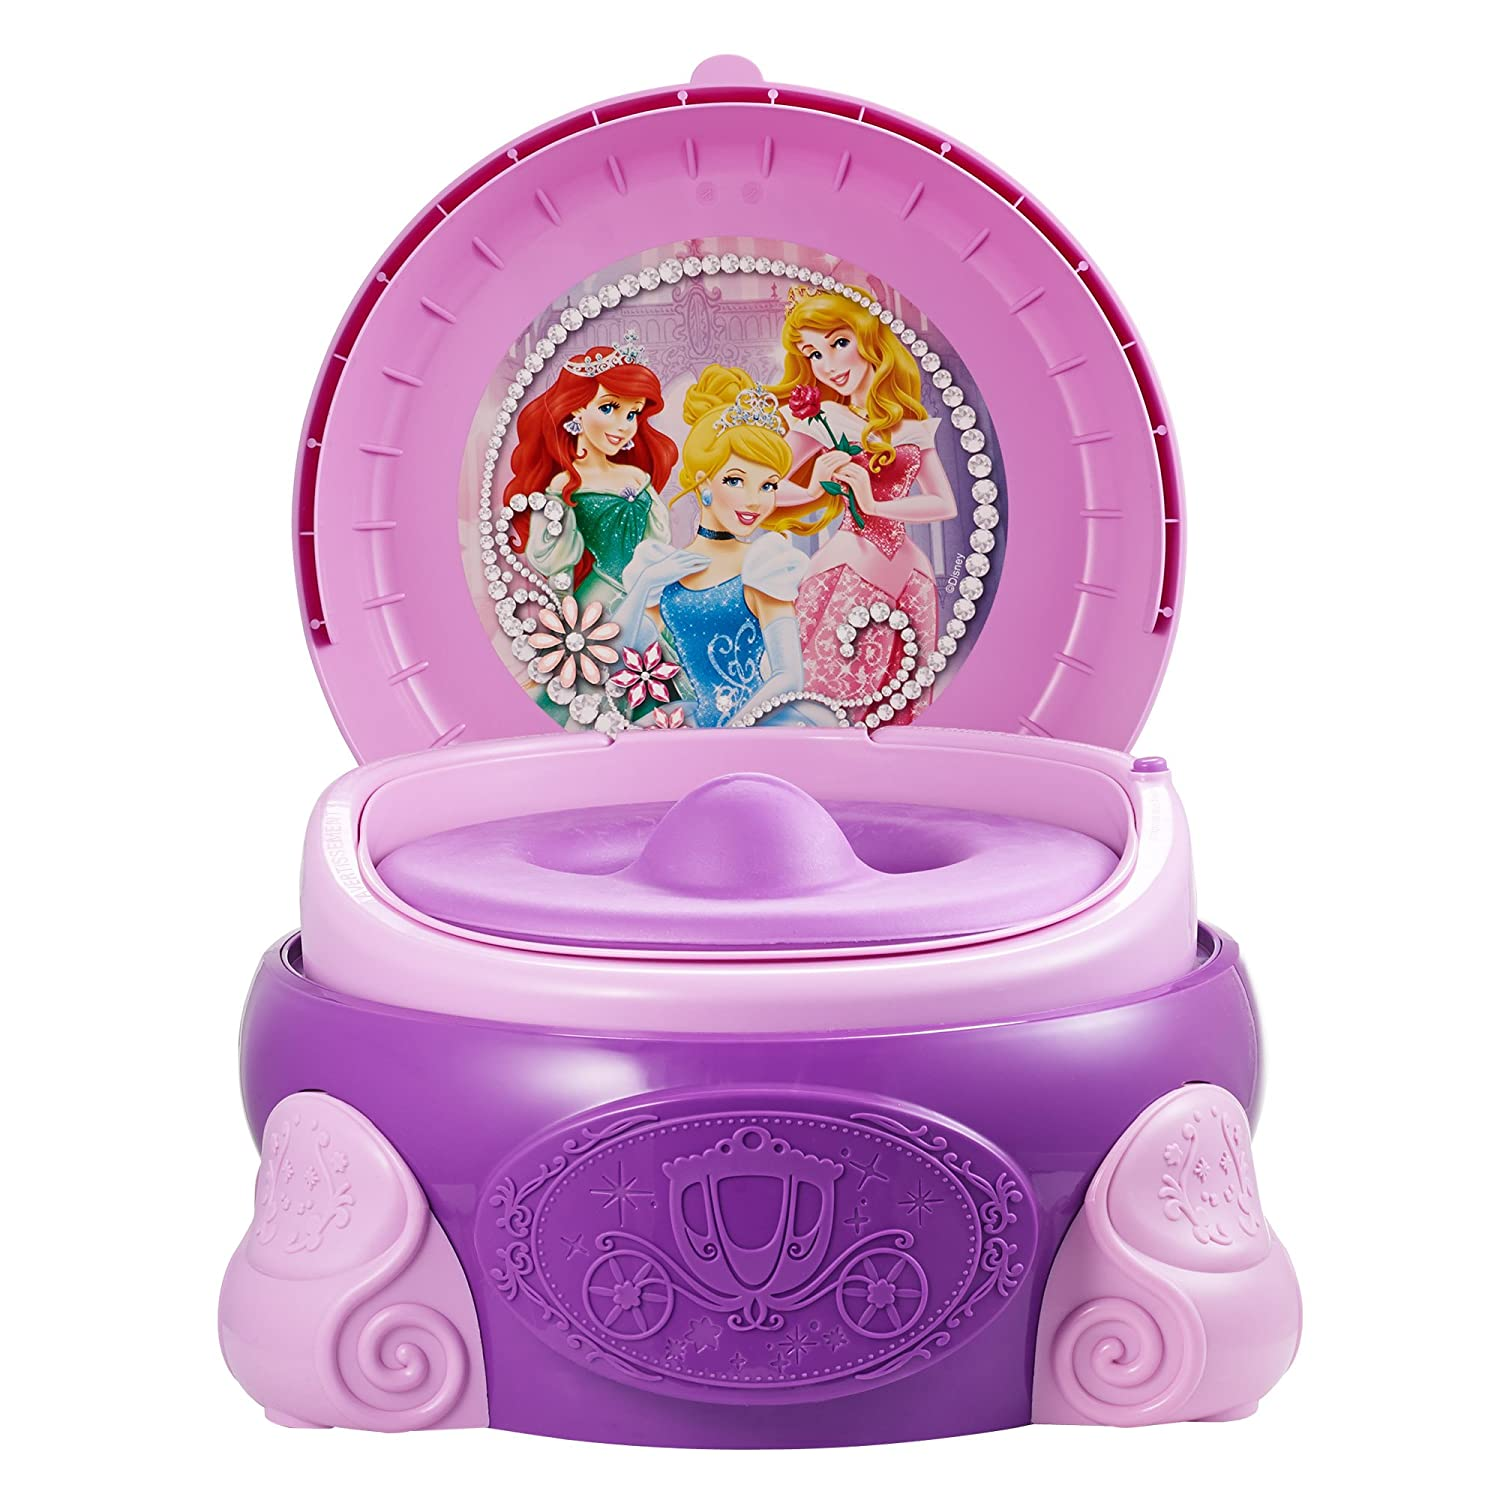 Amazon.com : The First Years Disney Princess Magic Sparkle 3 In 1 Potty  System : Toilet Training Potties : Baby